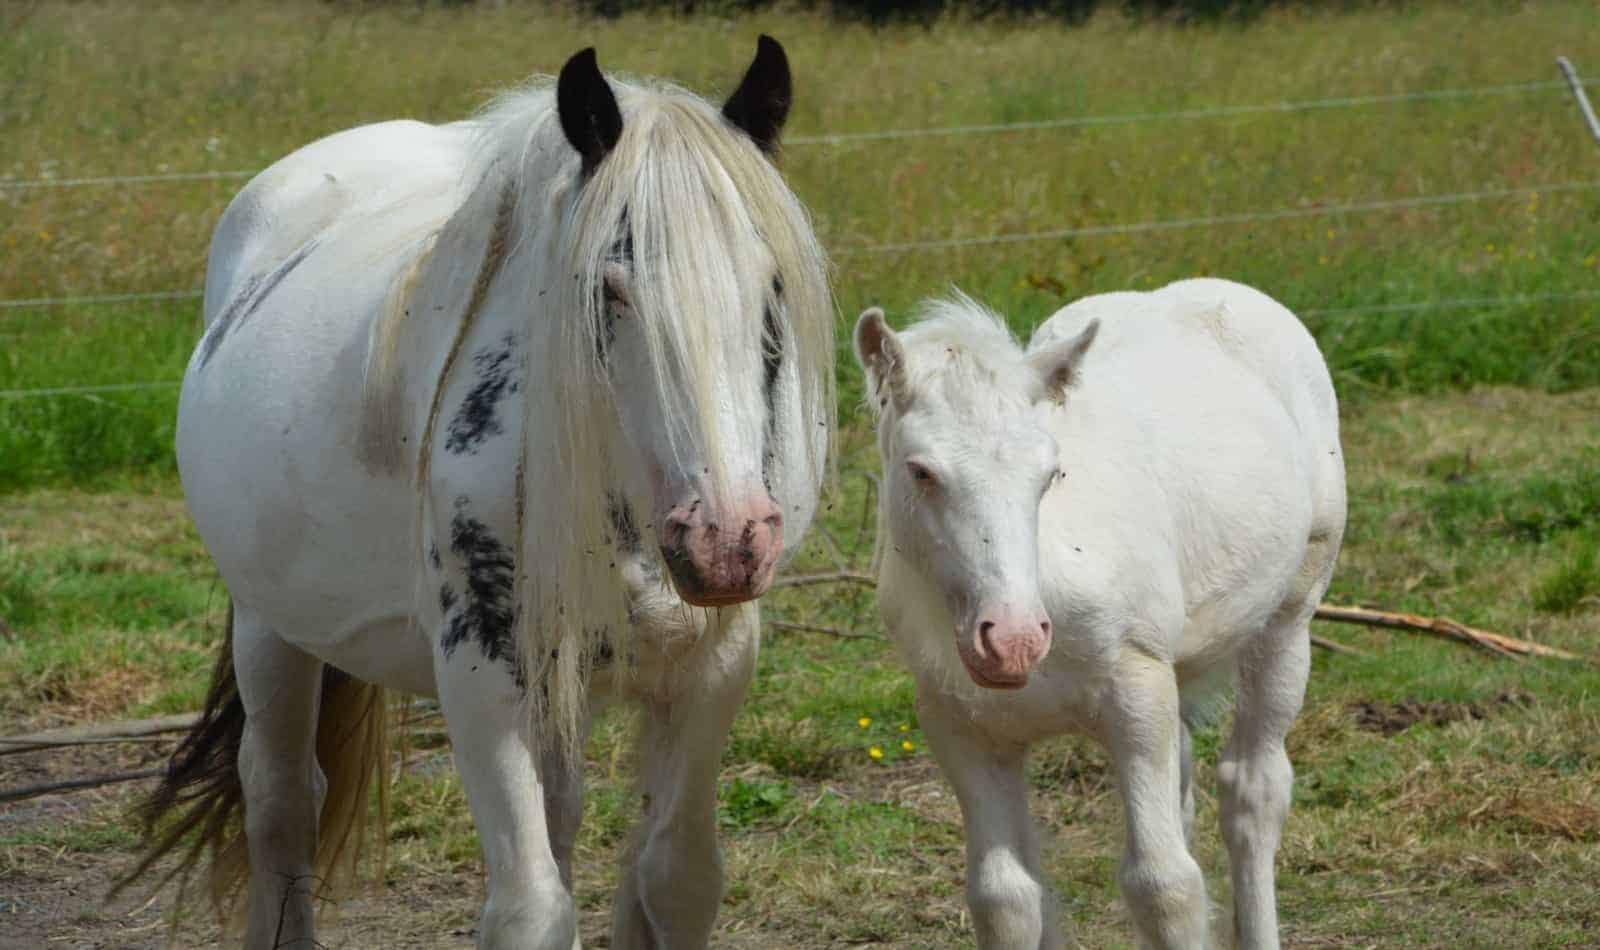 mare and cob Irish horses on the grassfield: can they eat parsley?